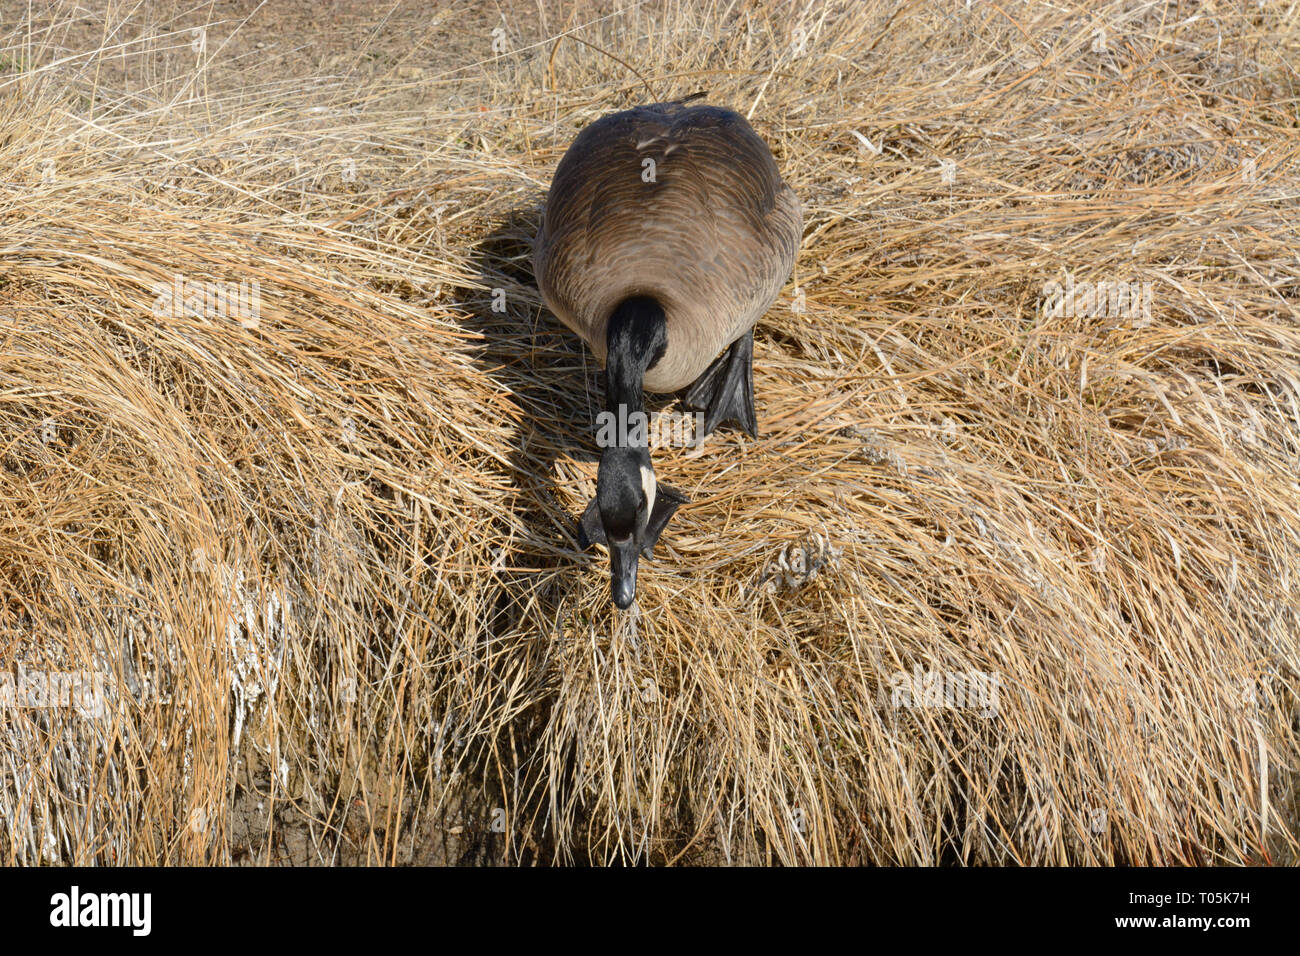 Canada goose looking at steep drop of lake bank with hesitation before descending - Stock Image